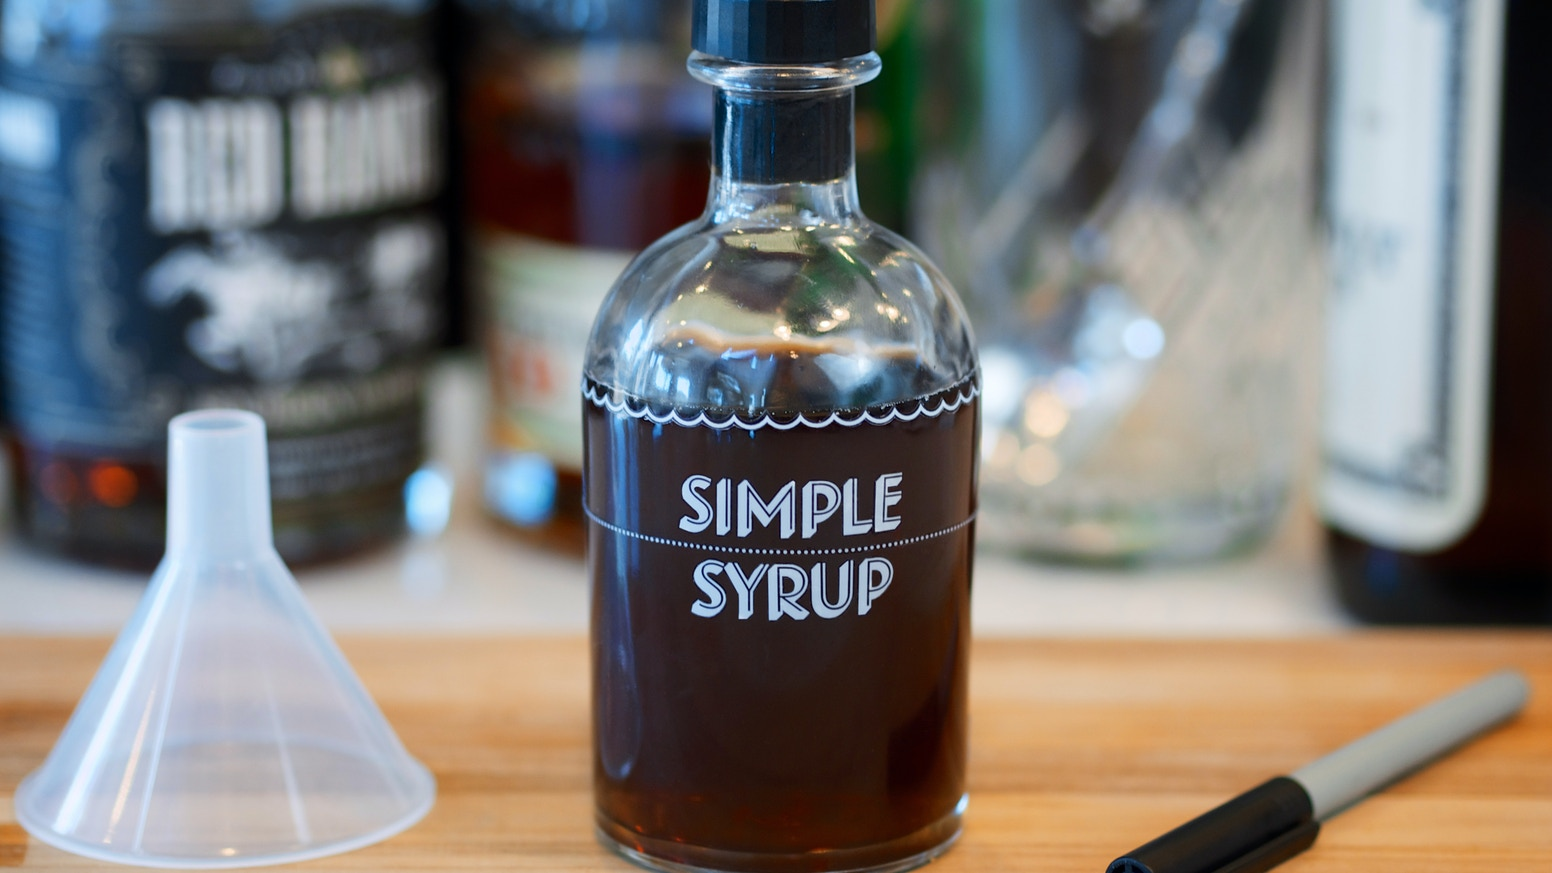 A kit for making and storing your own Simple Syrup, for use in cocktails and other libations.